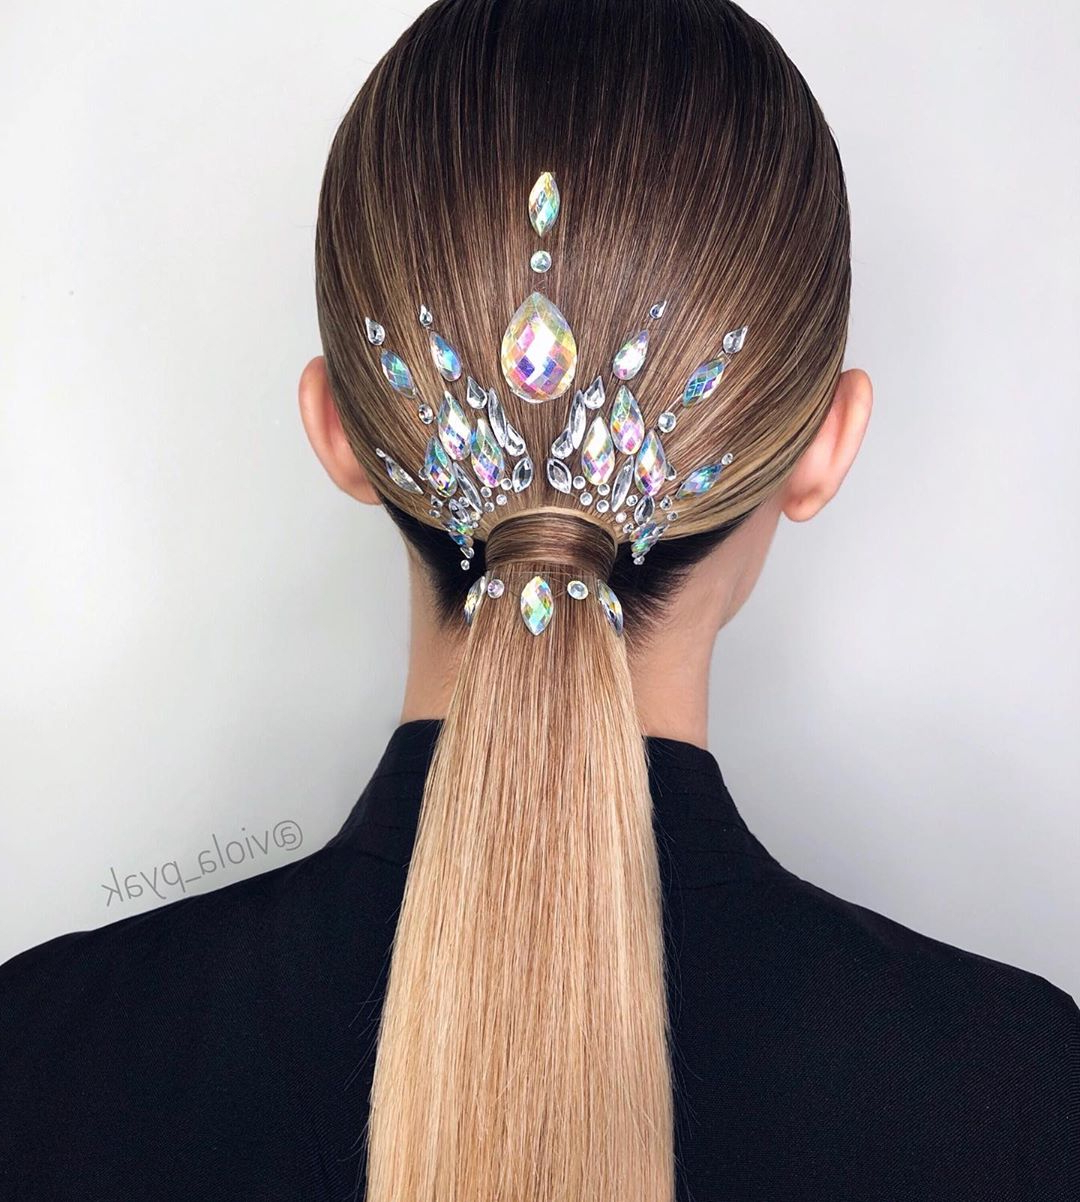 20 Ponytail Ideas And Tutorialsviola Pyak For Latest Pearl Crown Ponytail Hairstyles (View 2 of 20)